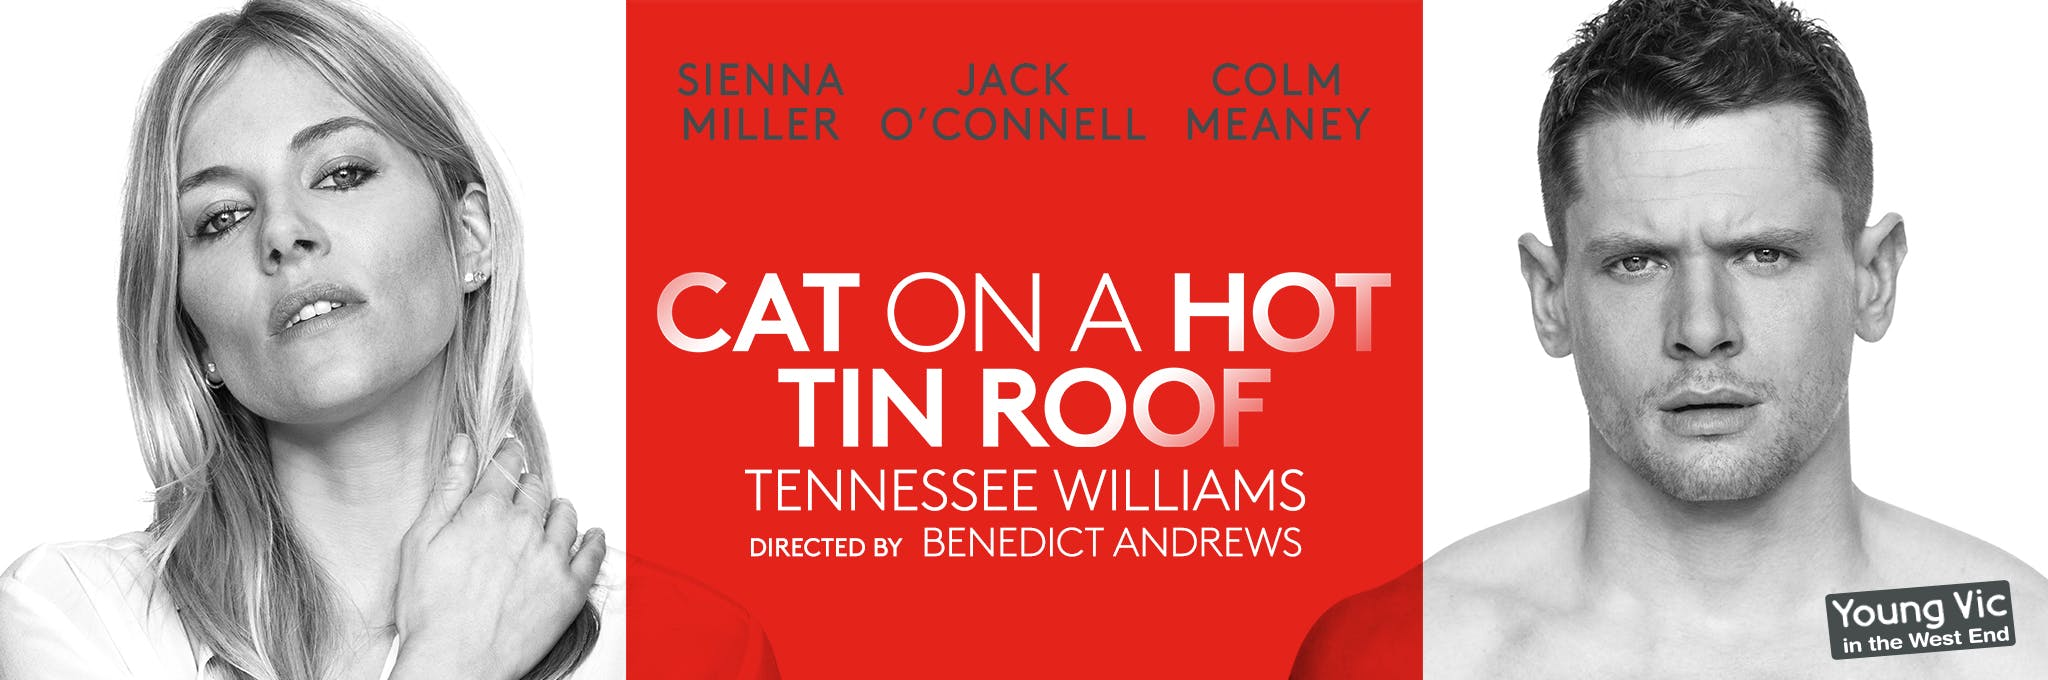 cat on a hot tin roof ending